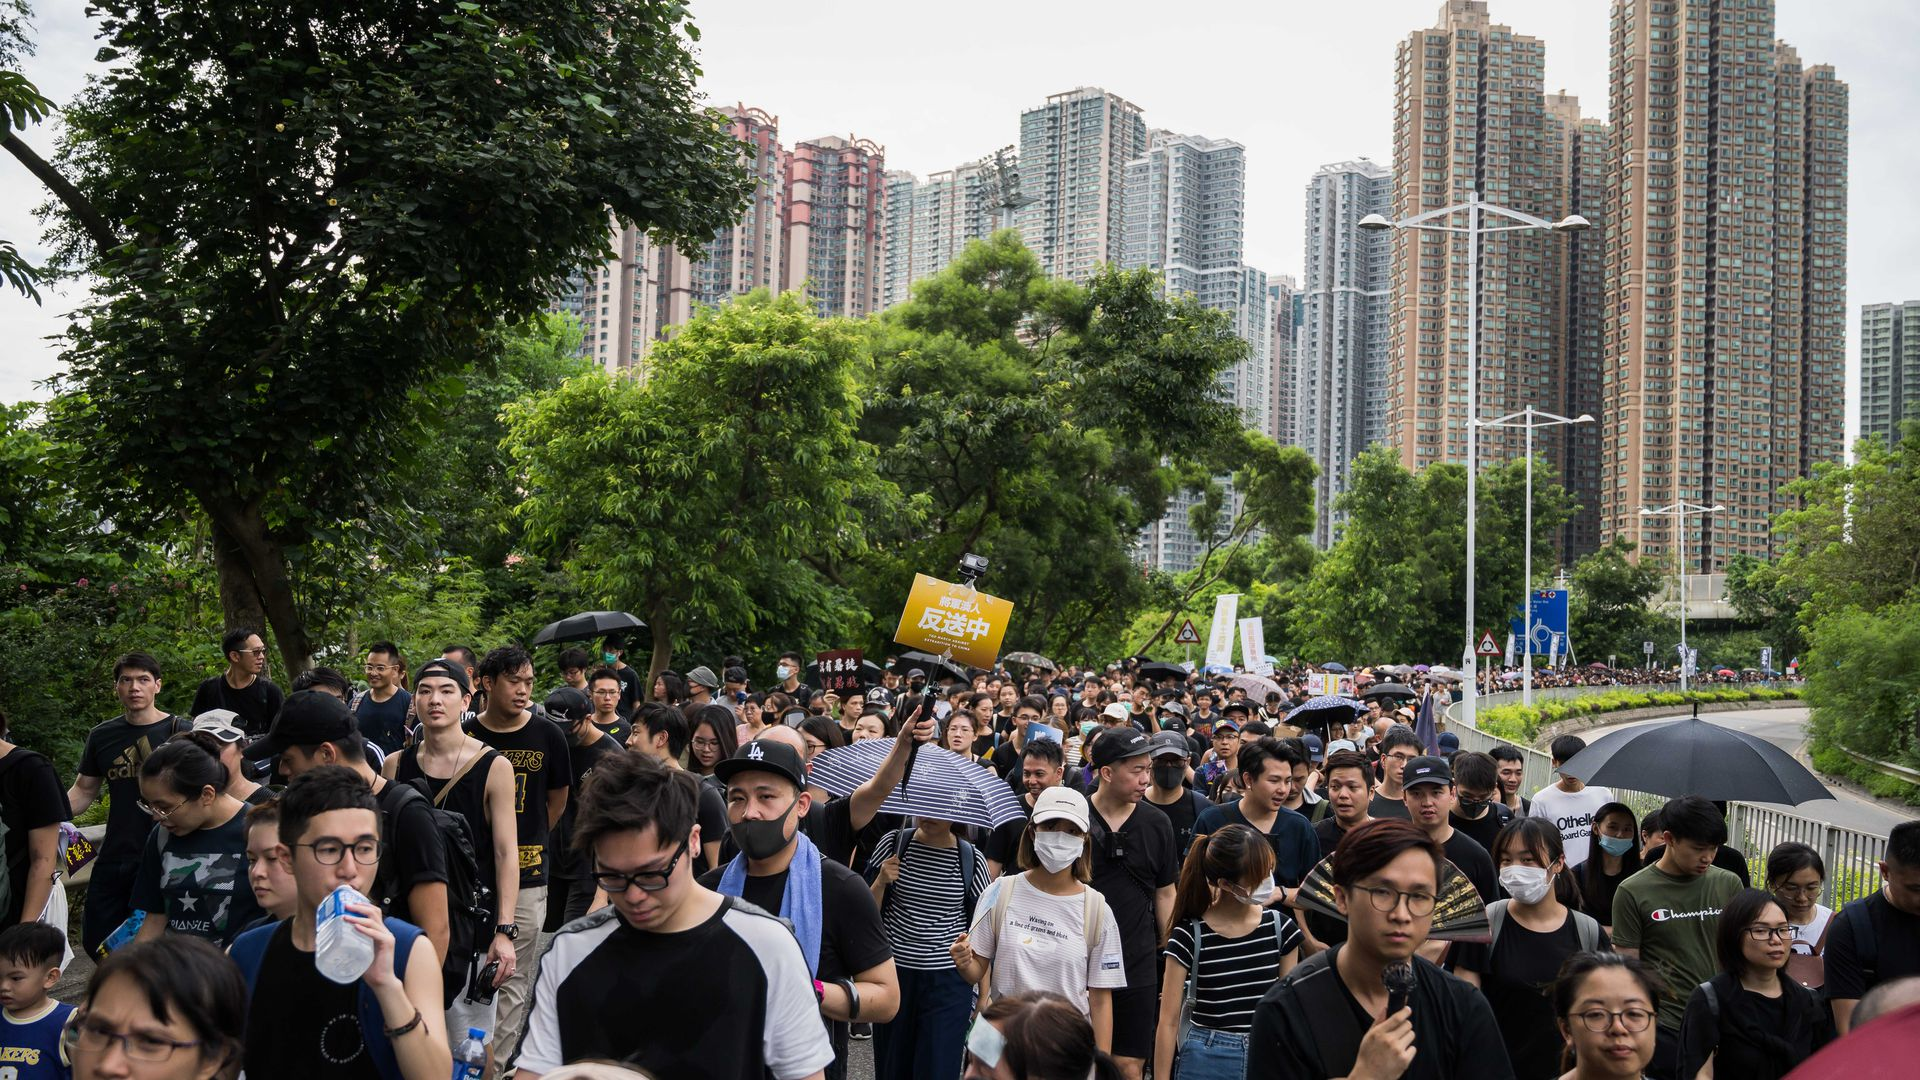 : Demonstrators march during a protest in the Tseung Kwan O district on Aug. 04, 2019 in Hong Kong